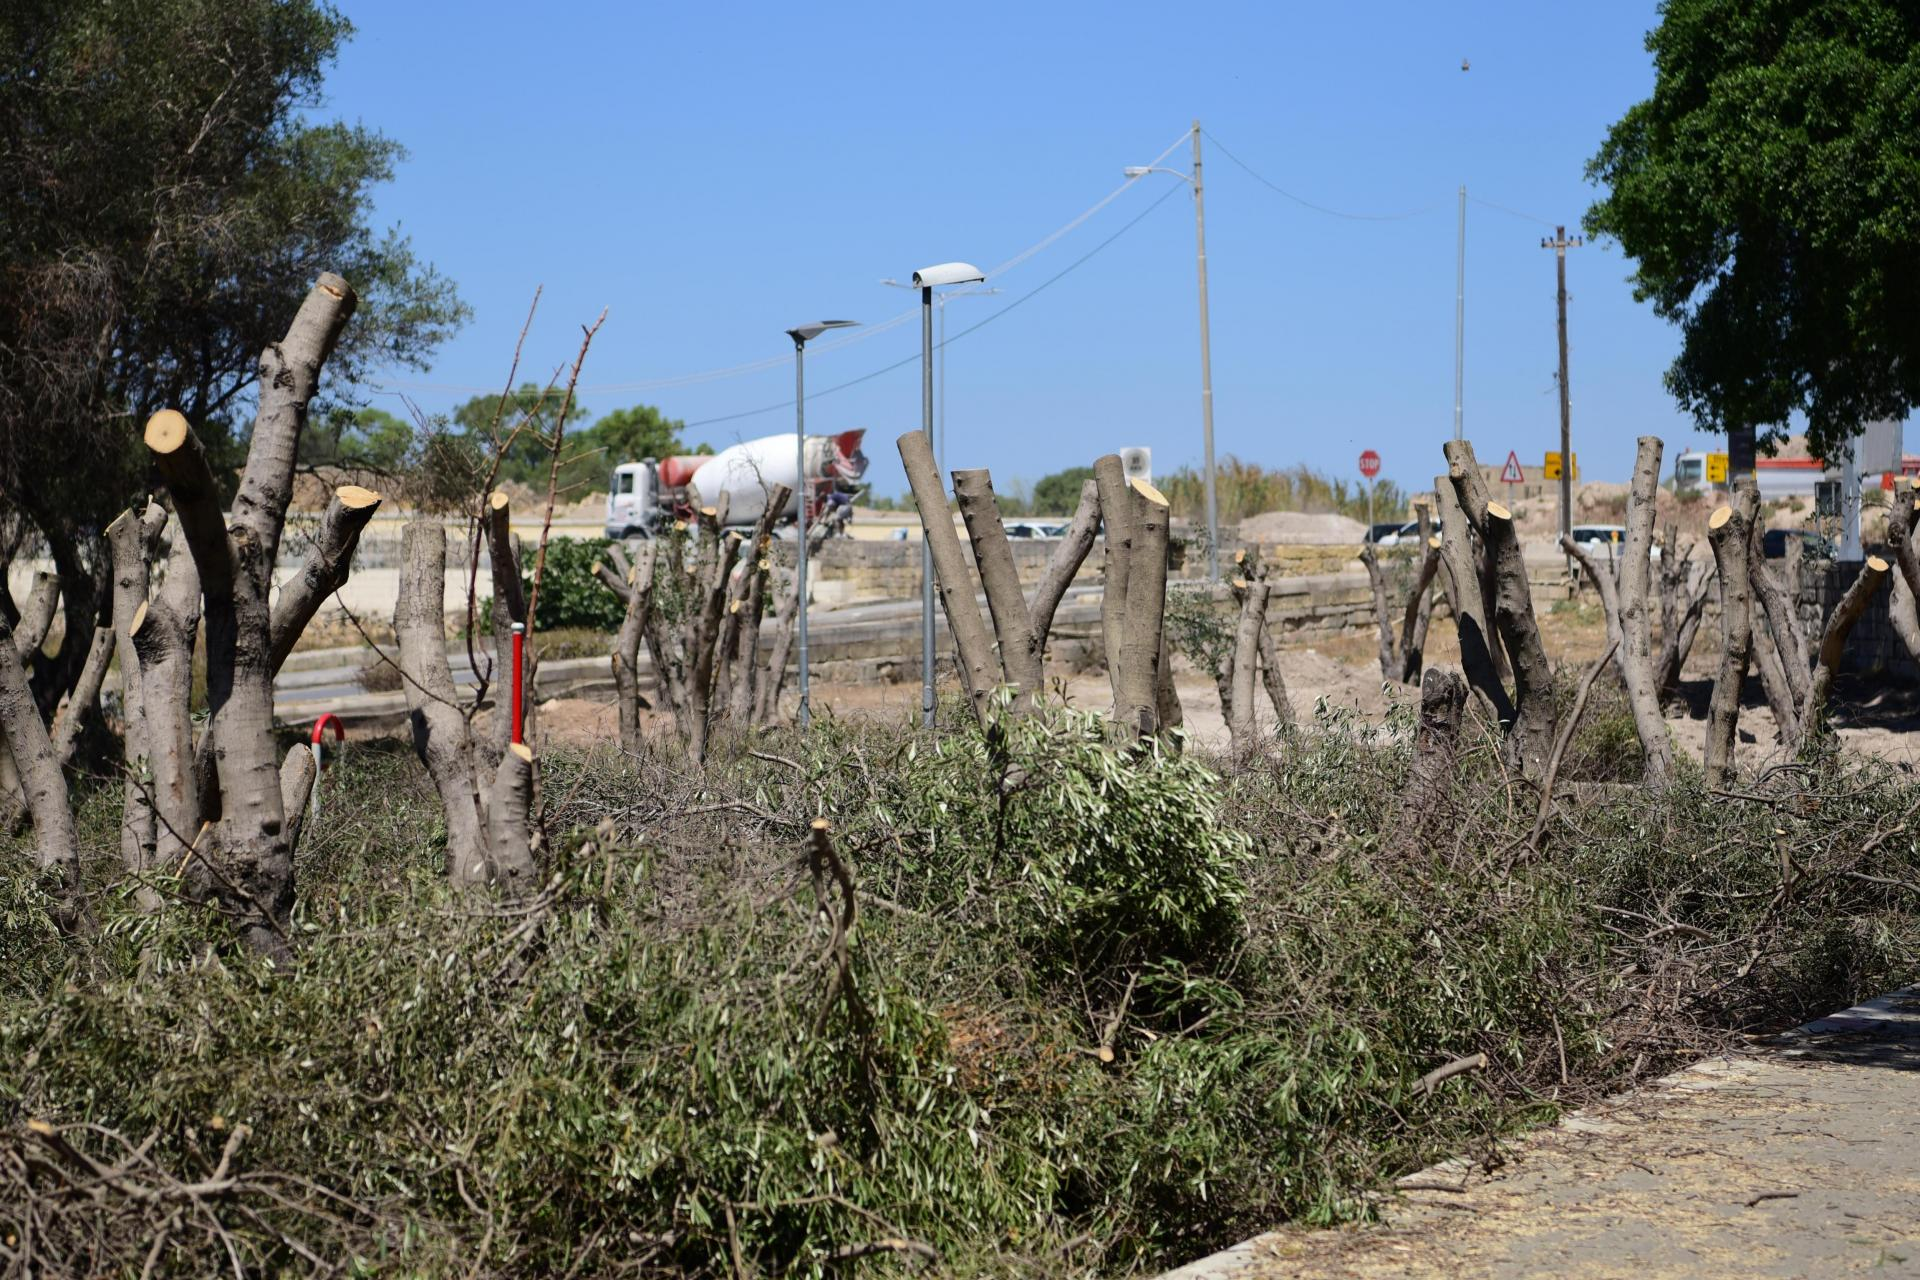 Several trees have been aggressively pruned ahead of being transplanted. Photo: Mark Zammit Cordina